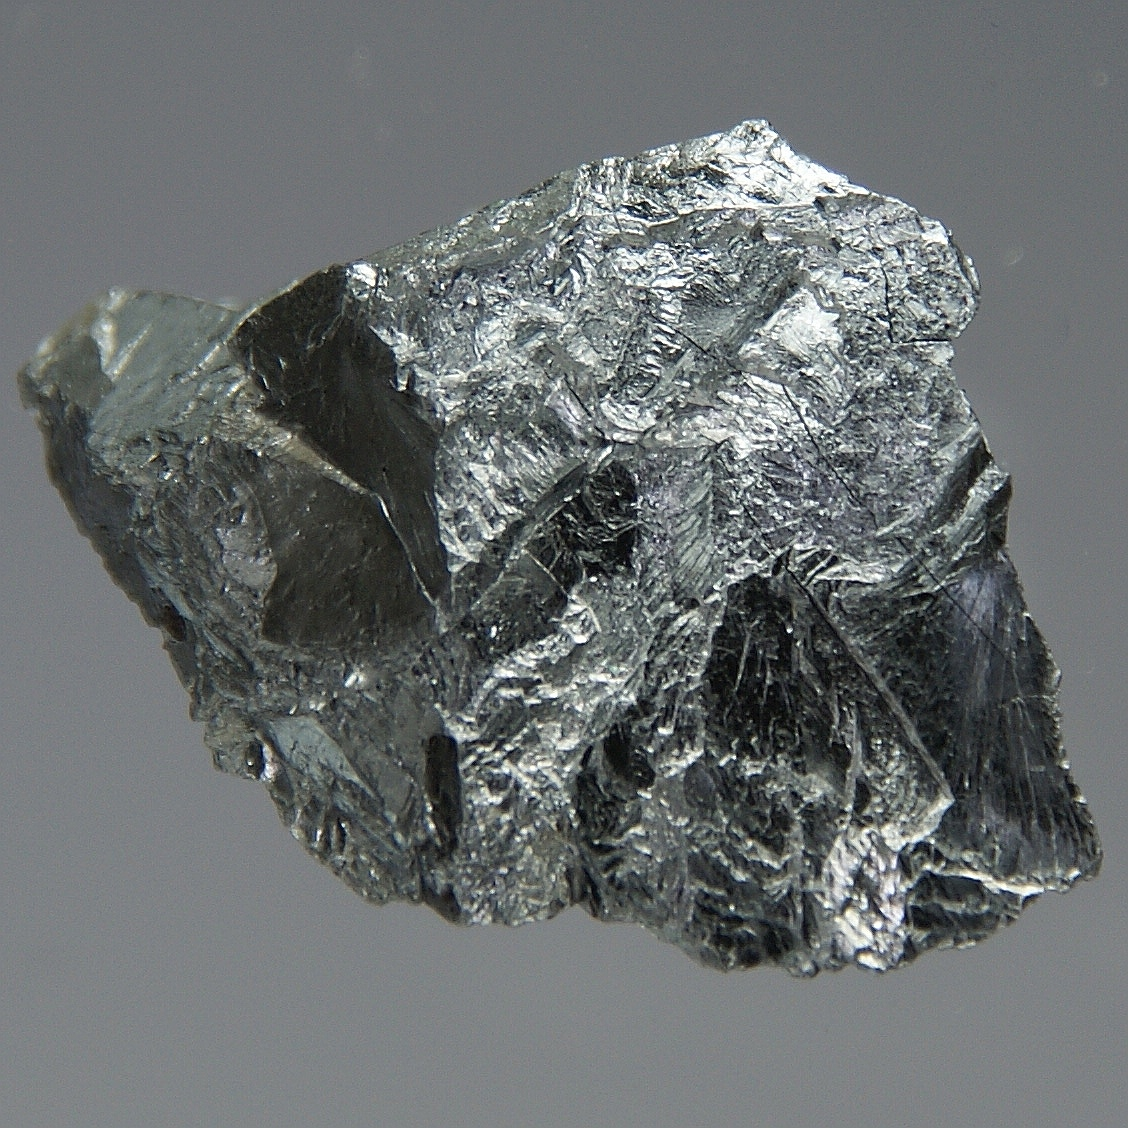 The element chromium